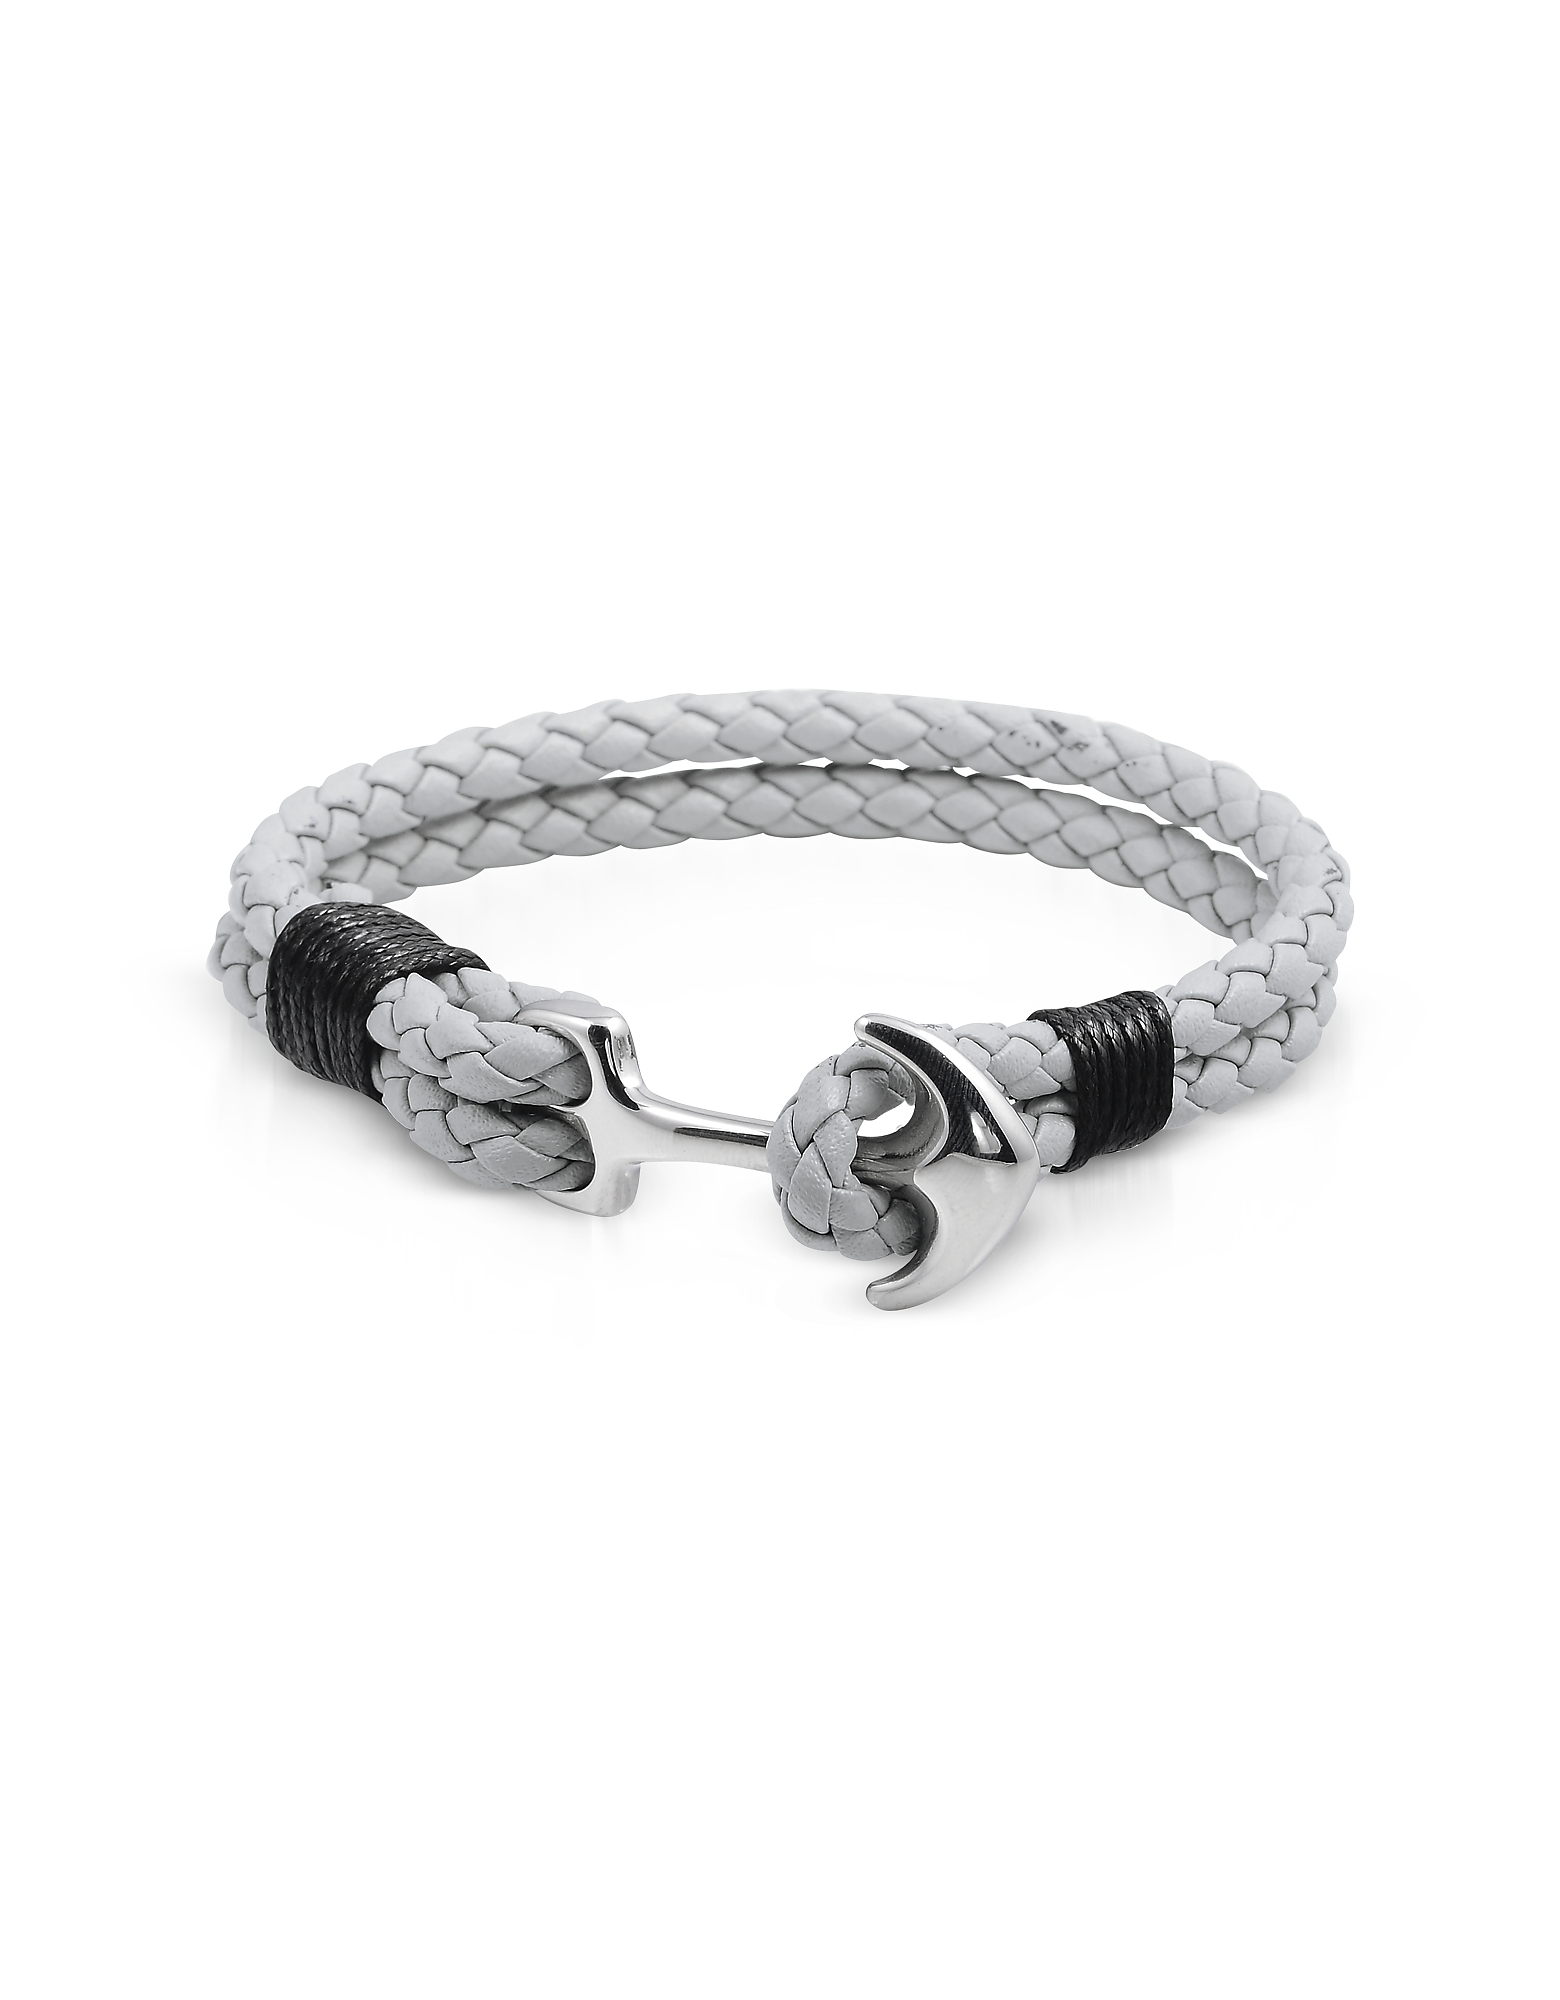 Forzieri Designer Men's Bracelets, Light Gray Leather Men's Bracelet w/Anchor